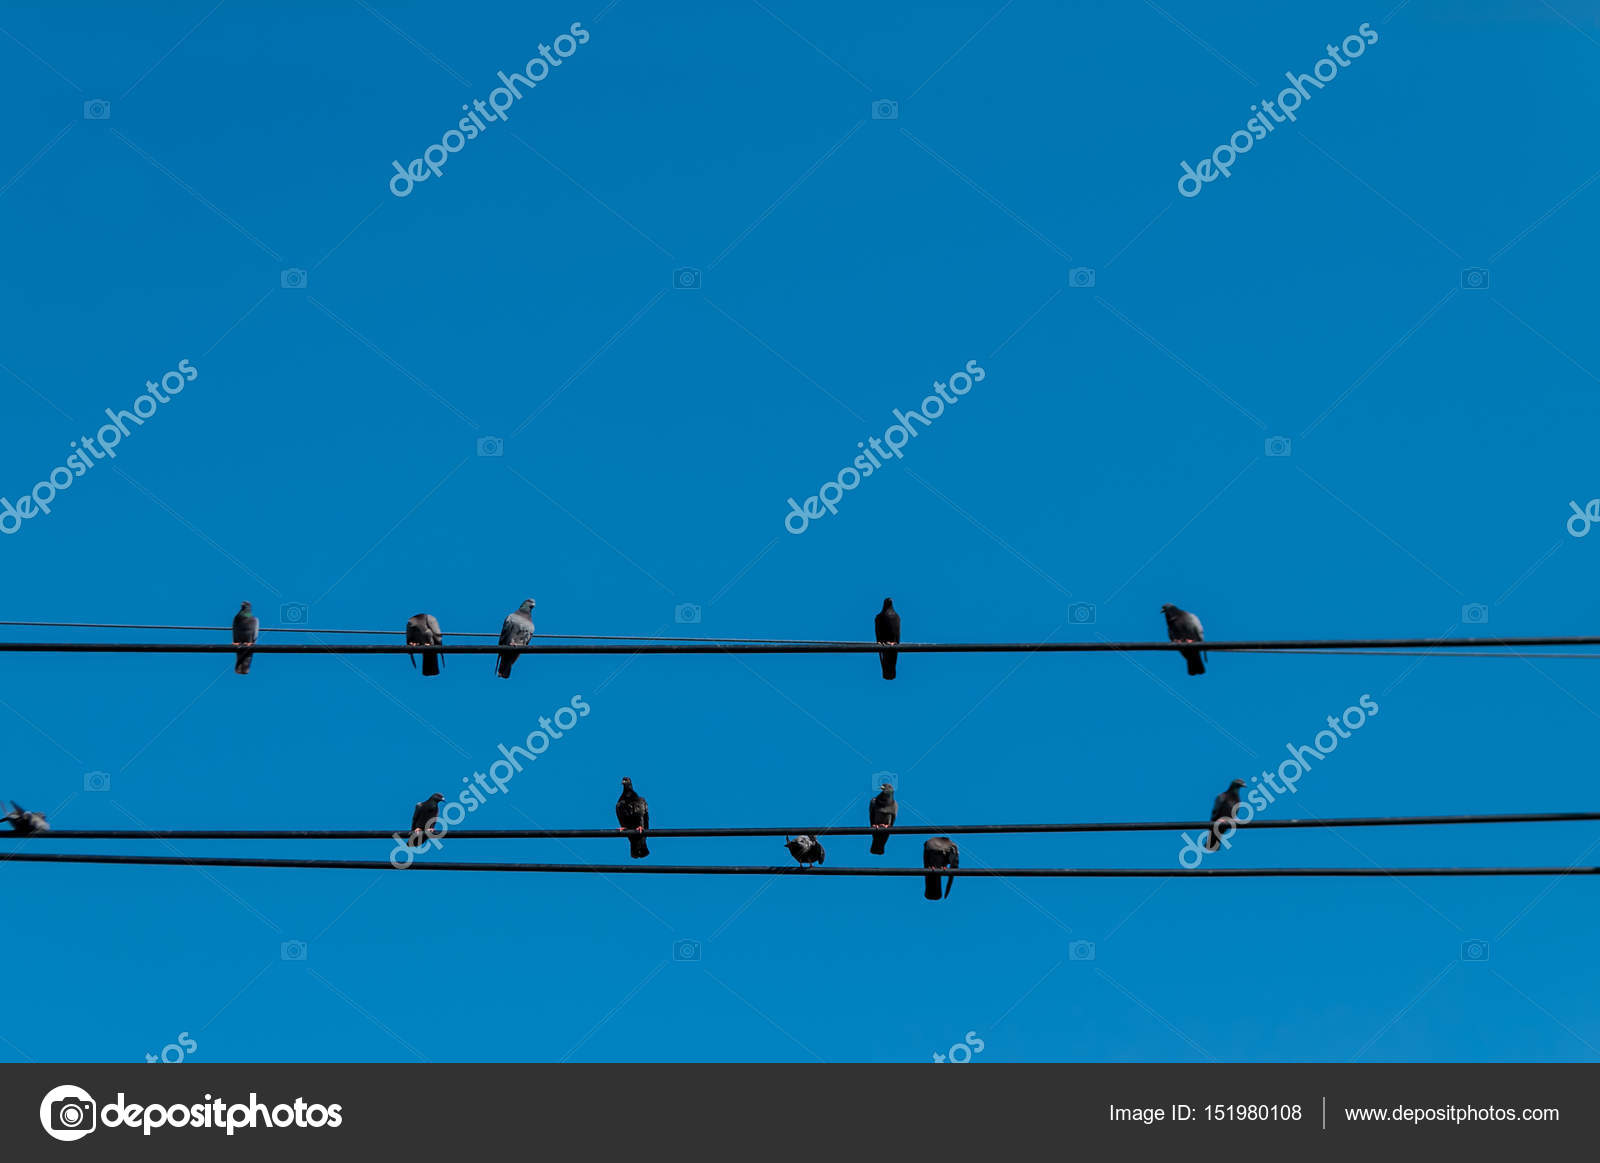 sky phone line wiring diagram birds on wires isolated against clear blue sky     stock photo  wires isolated against clear blue sky